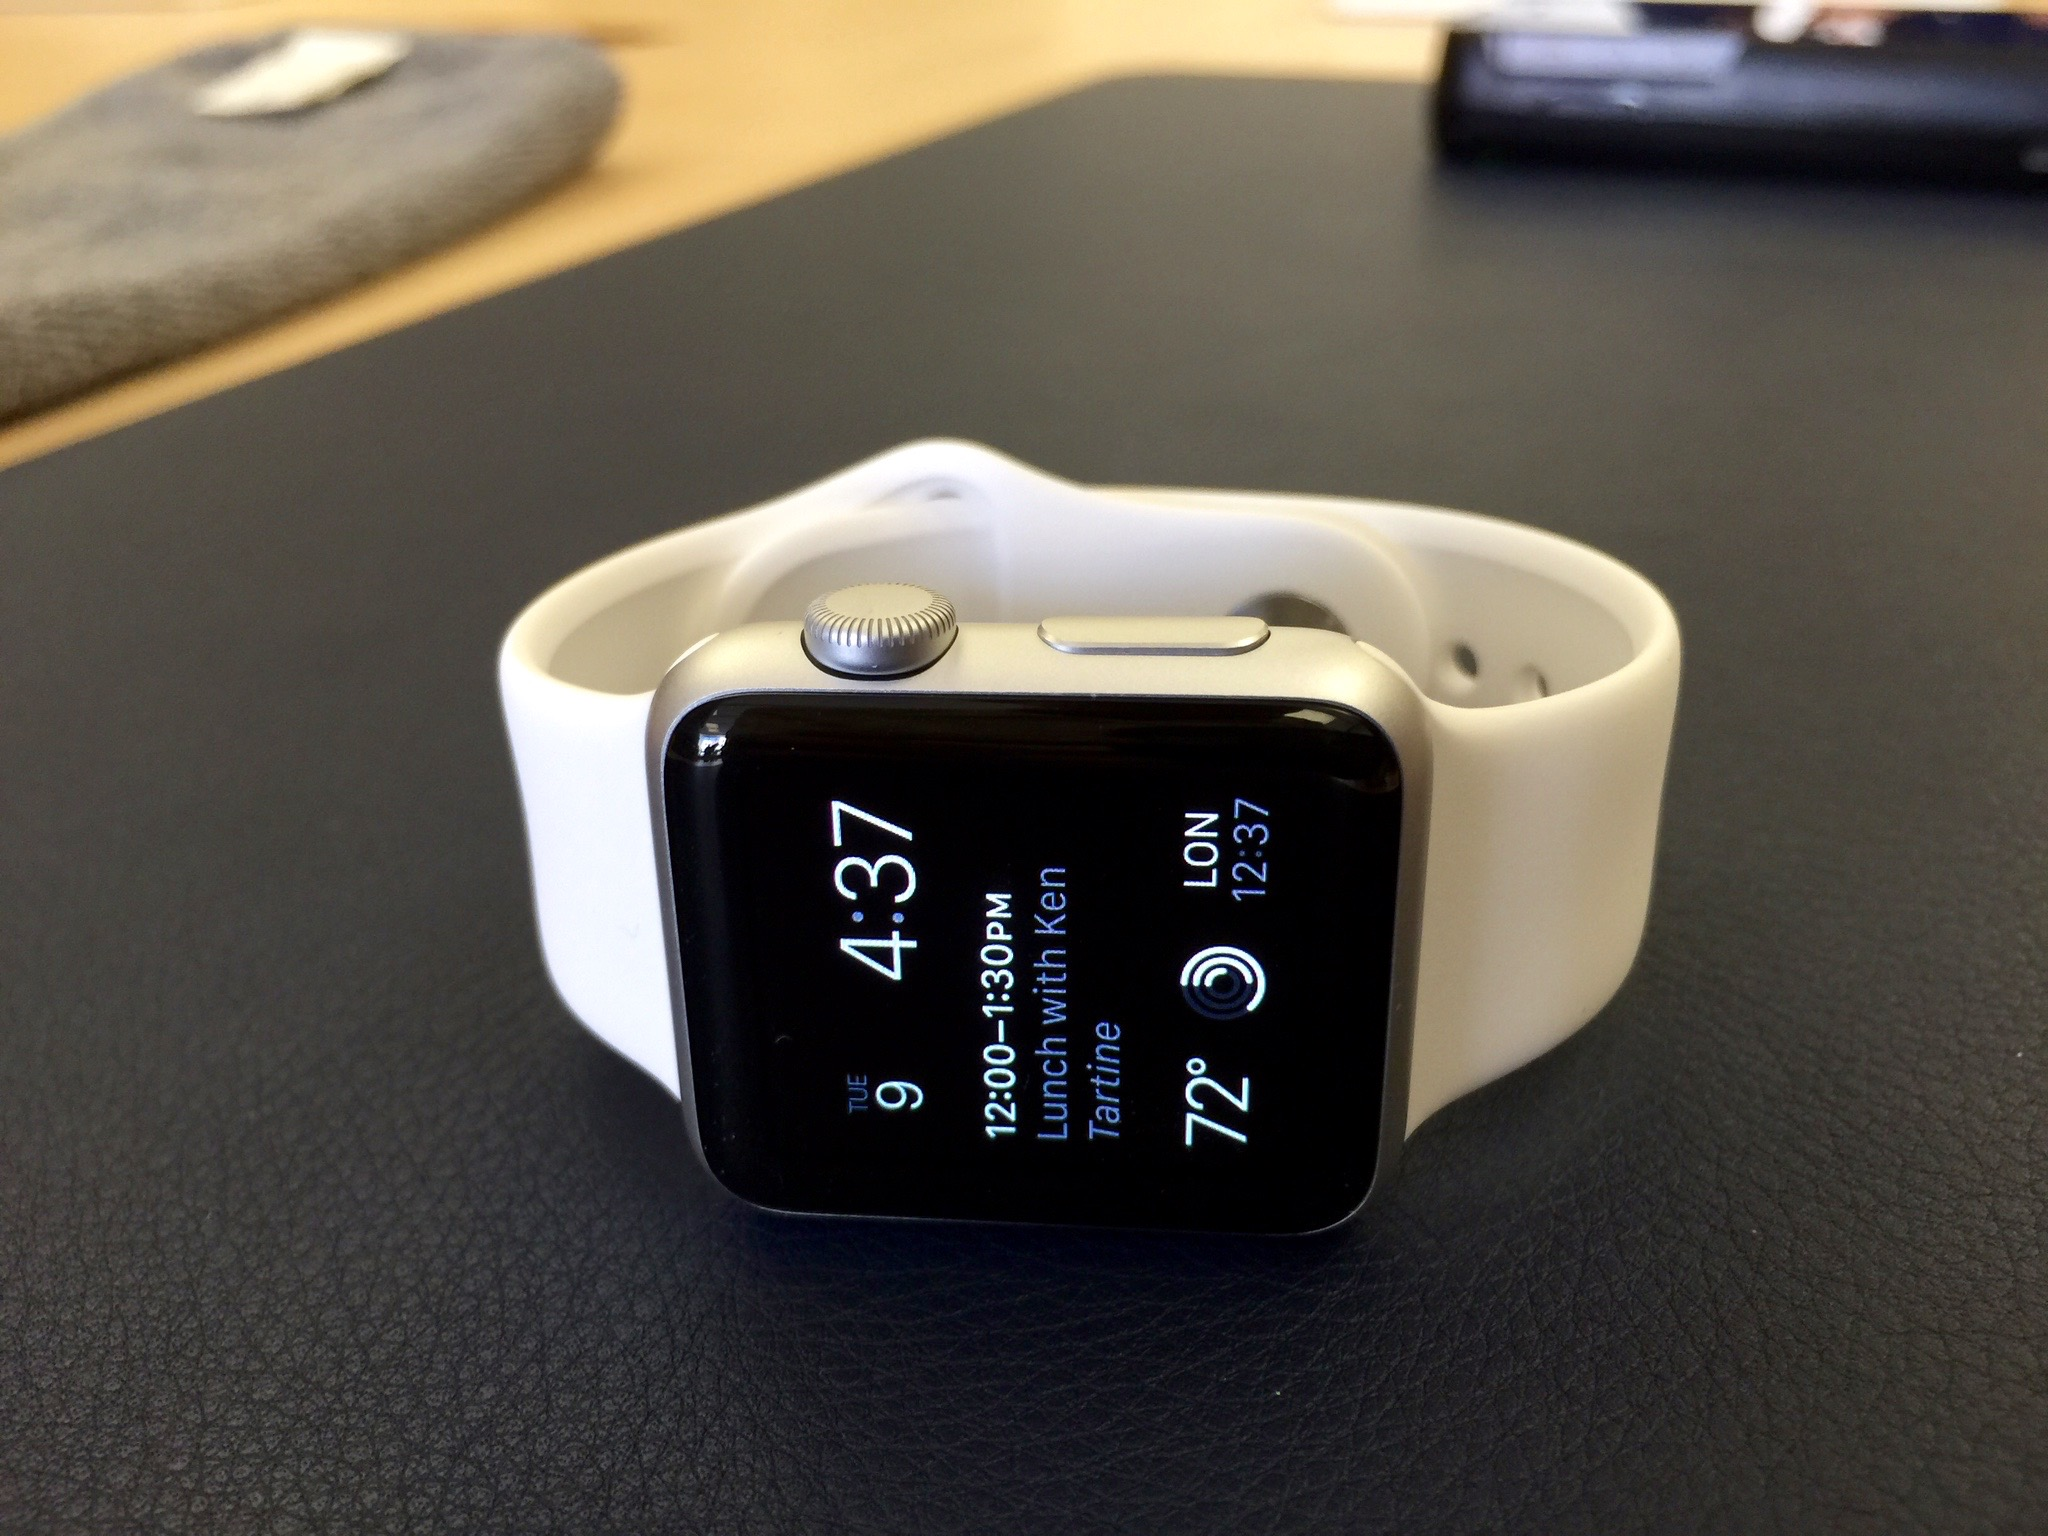 Buy the Apple Watch and pick up AppleCare+ that also covers your iPhone, even if your iPhone is more than 60 days old.